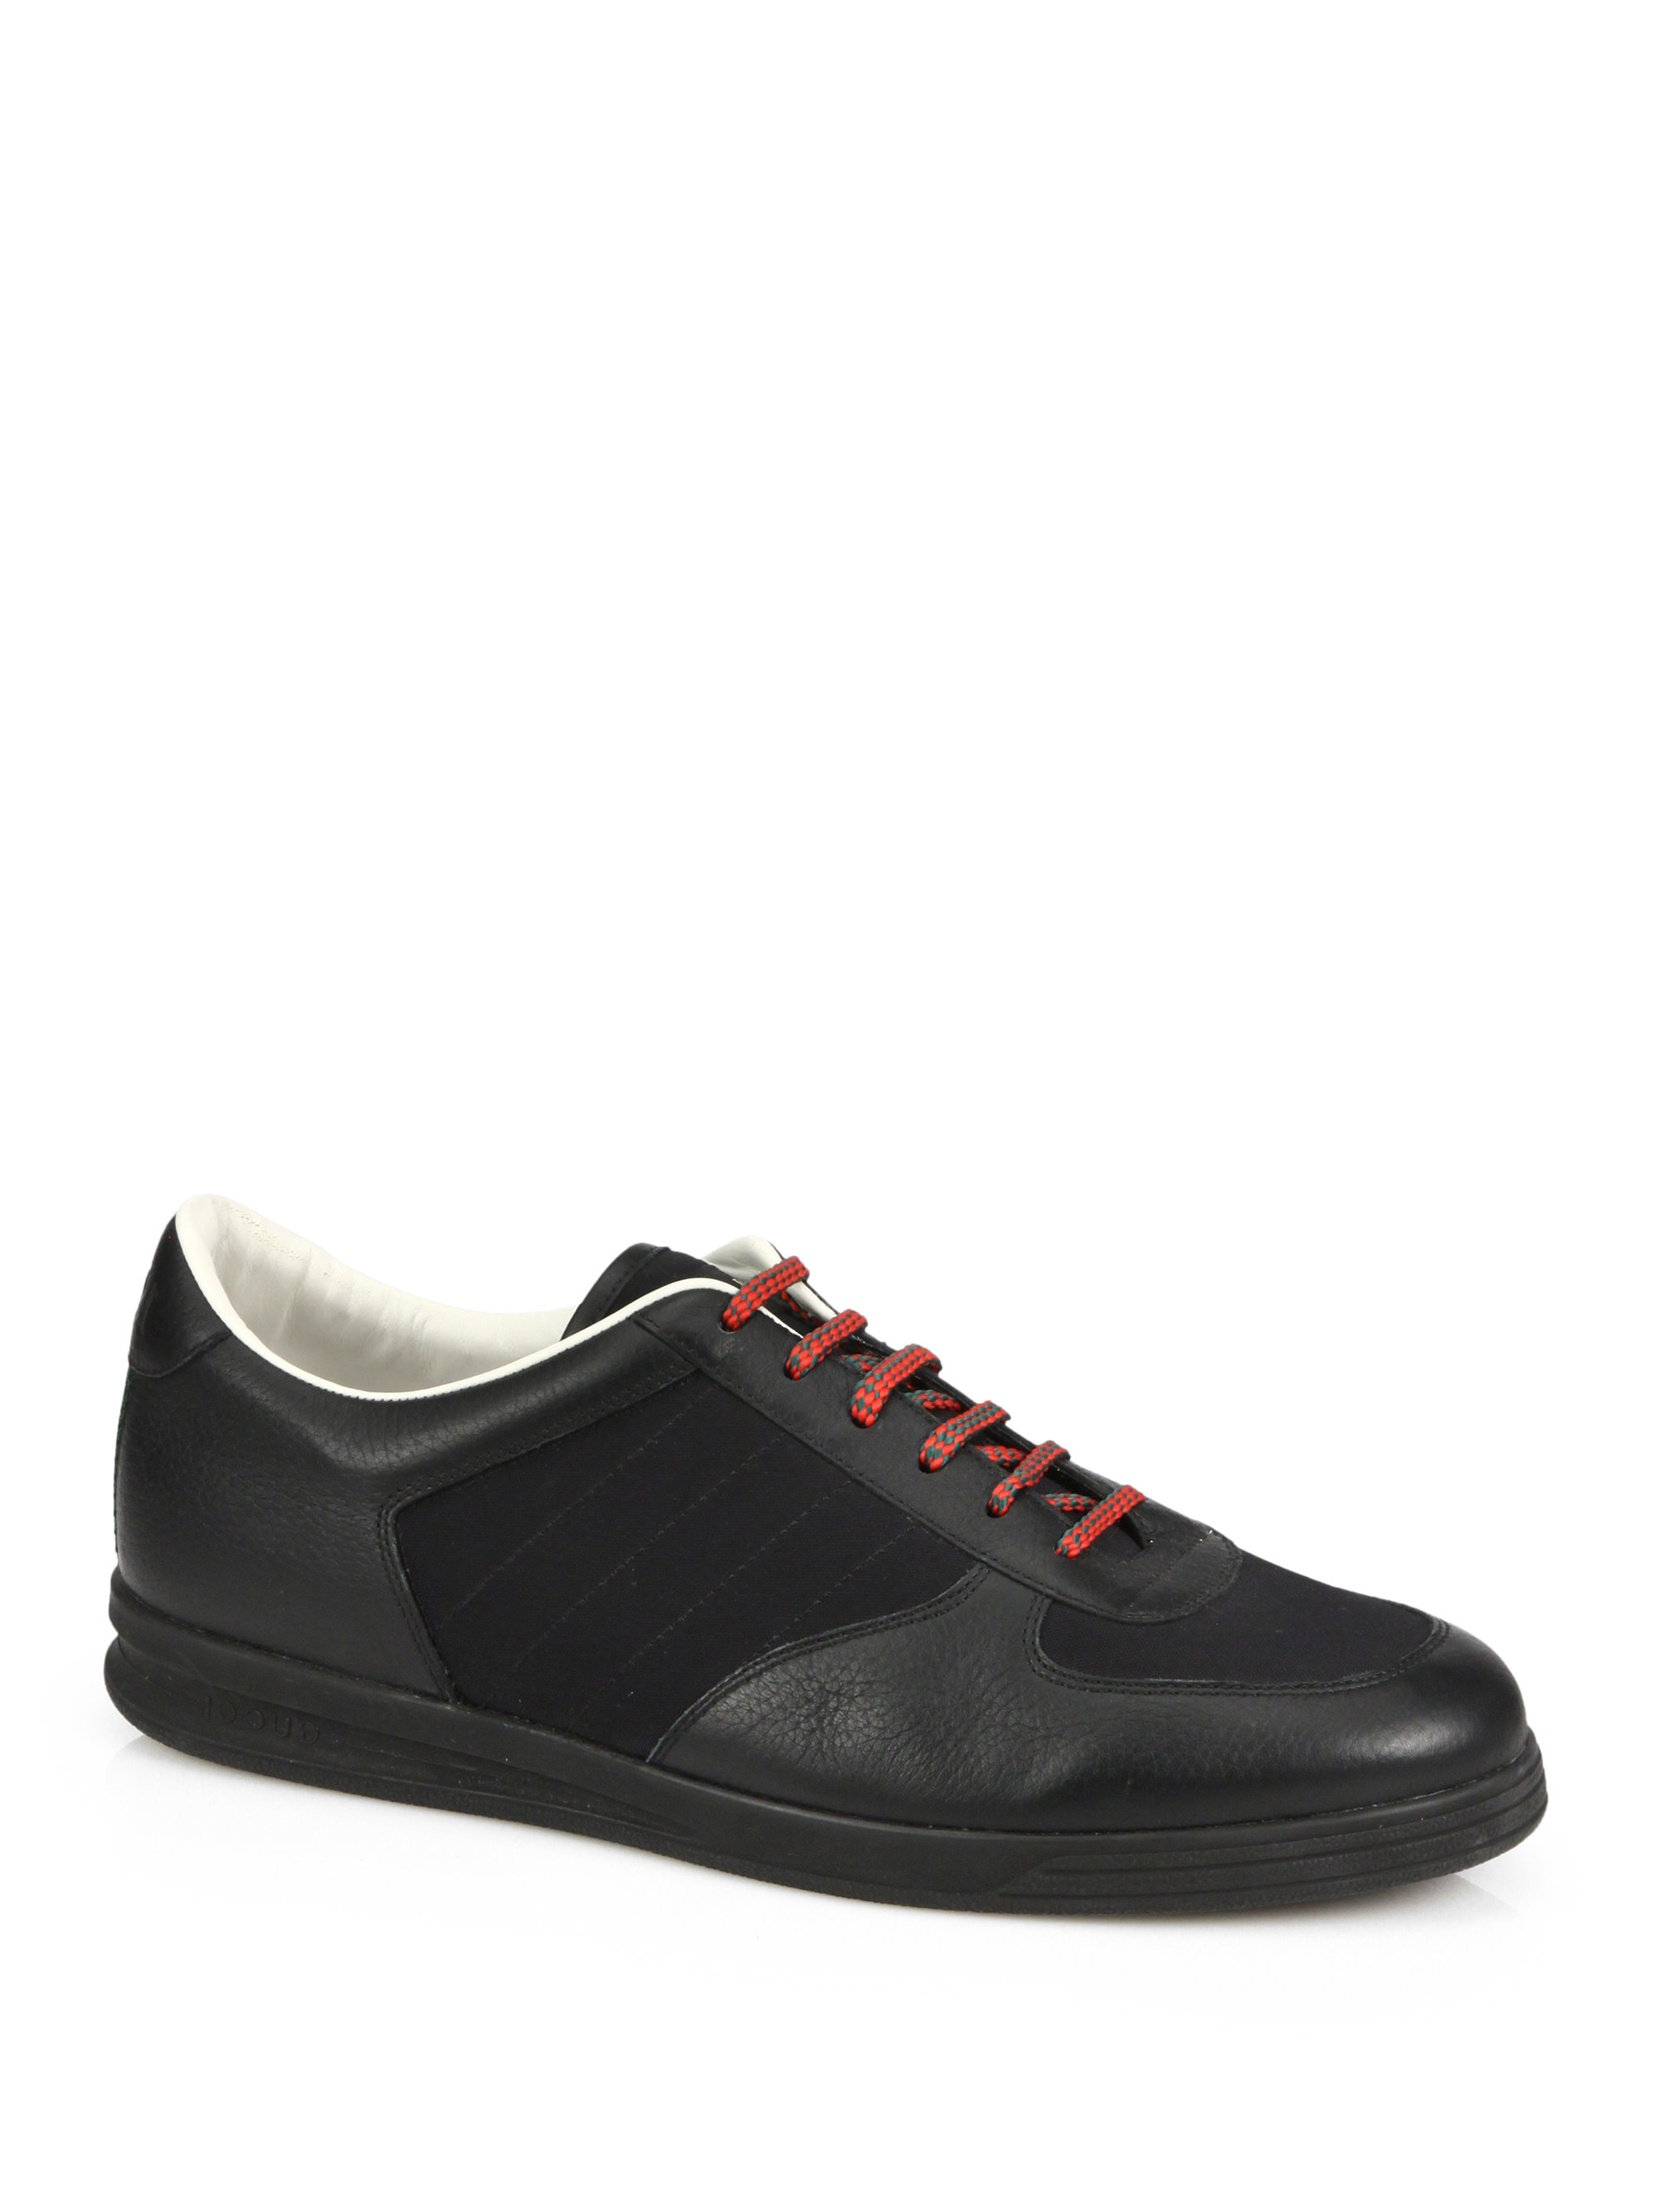 e5aff652614 Lyst - Gucci 1984 Leather Anniversary Sneakers in Black for Men